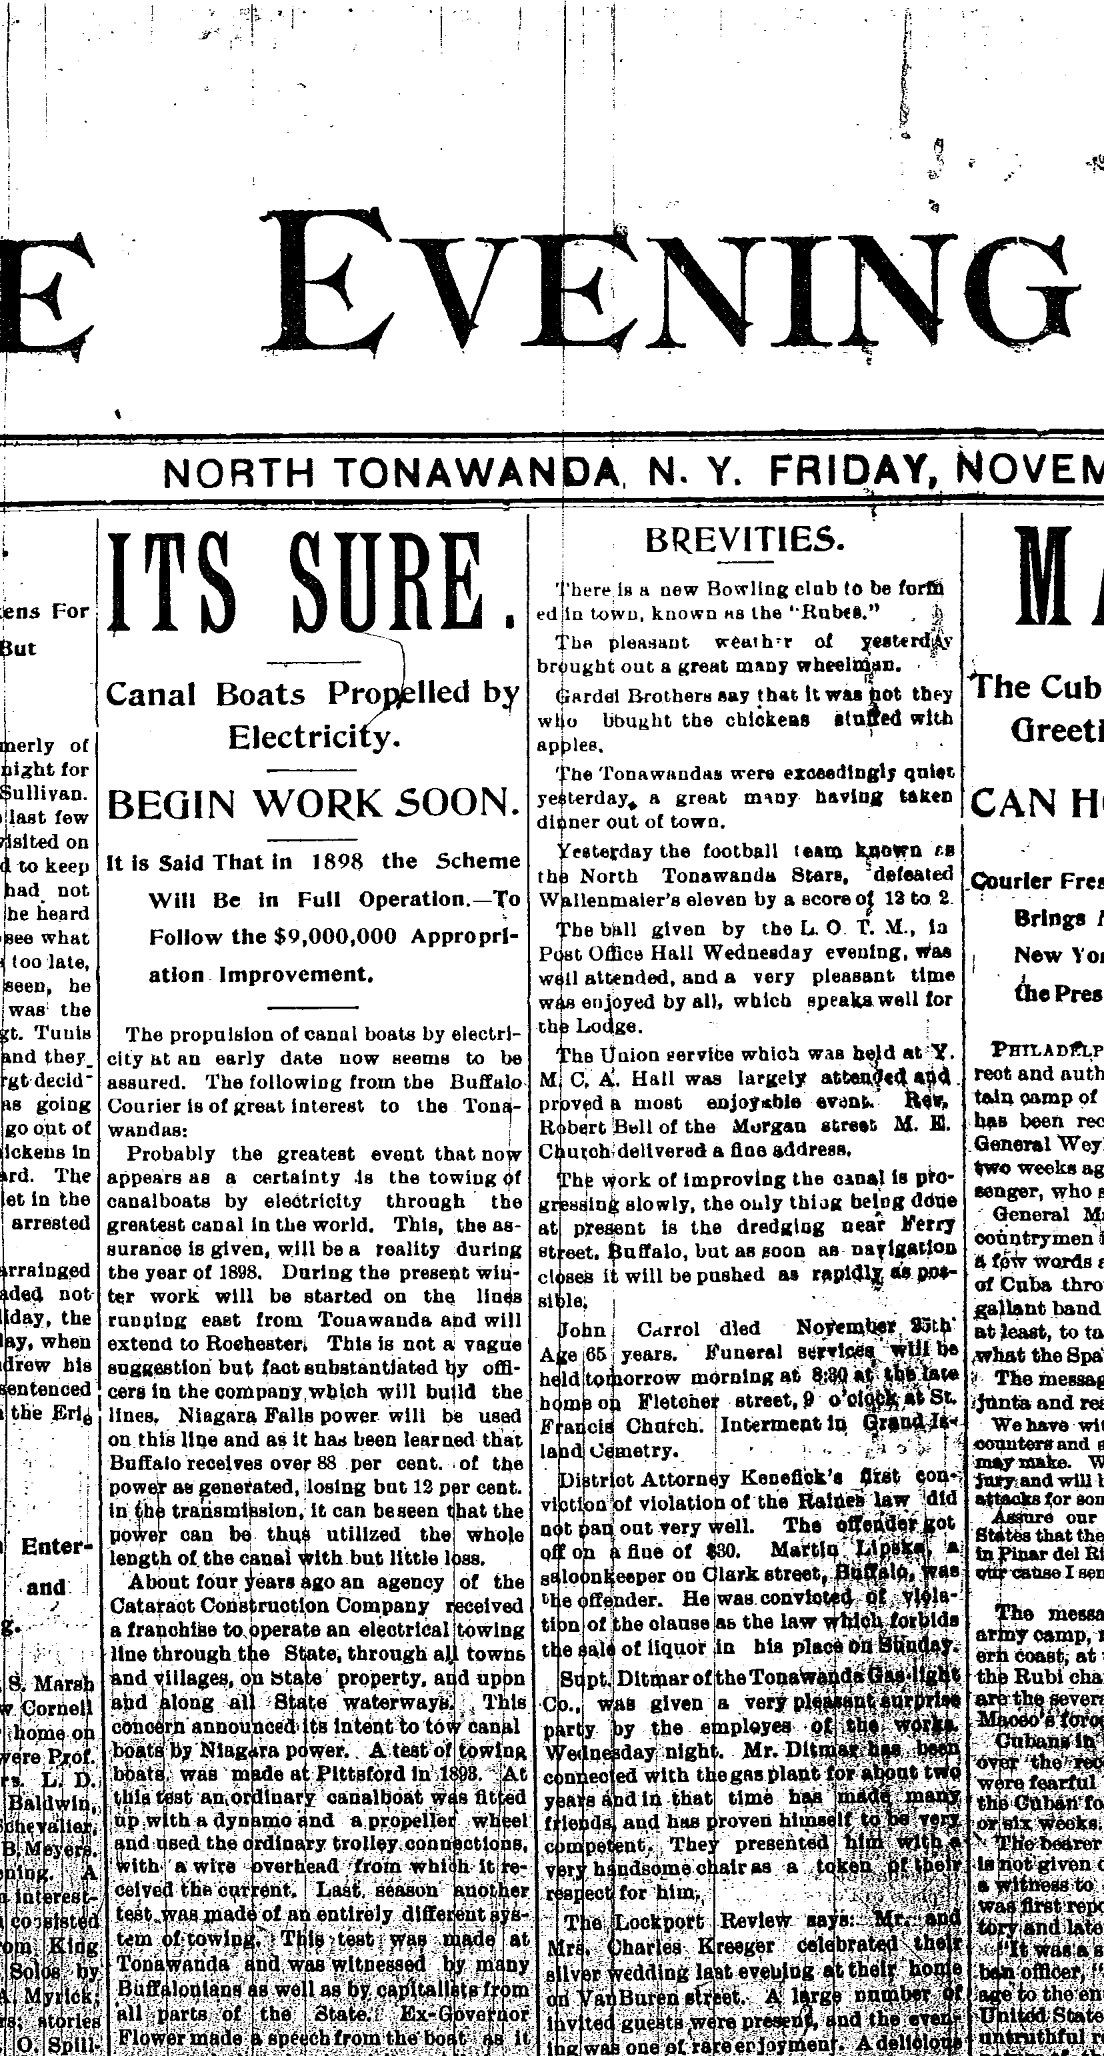 Canal Boats to Be Propelled by Electricity, article (Tonawanda News, 1896-11-27).jpg